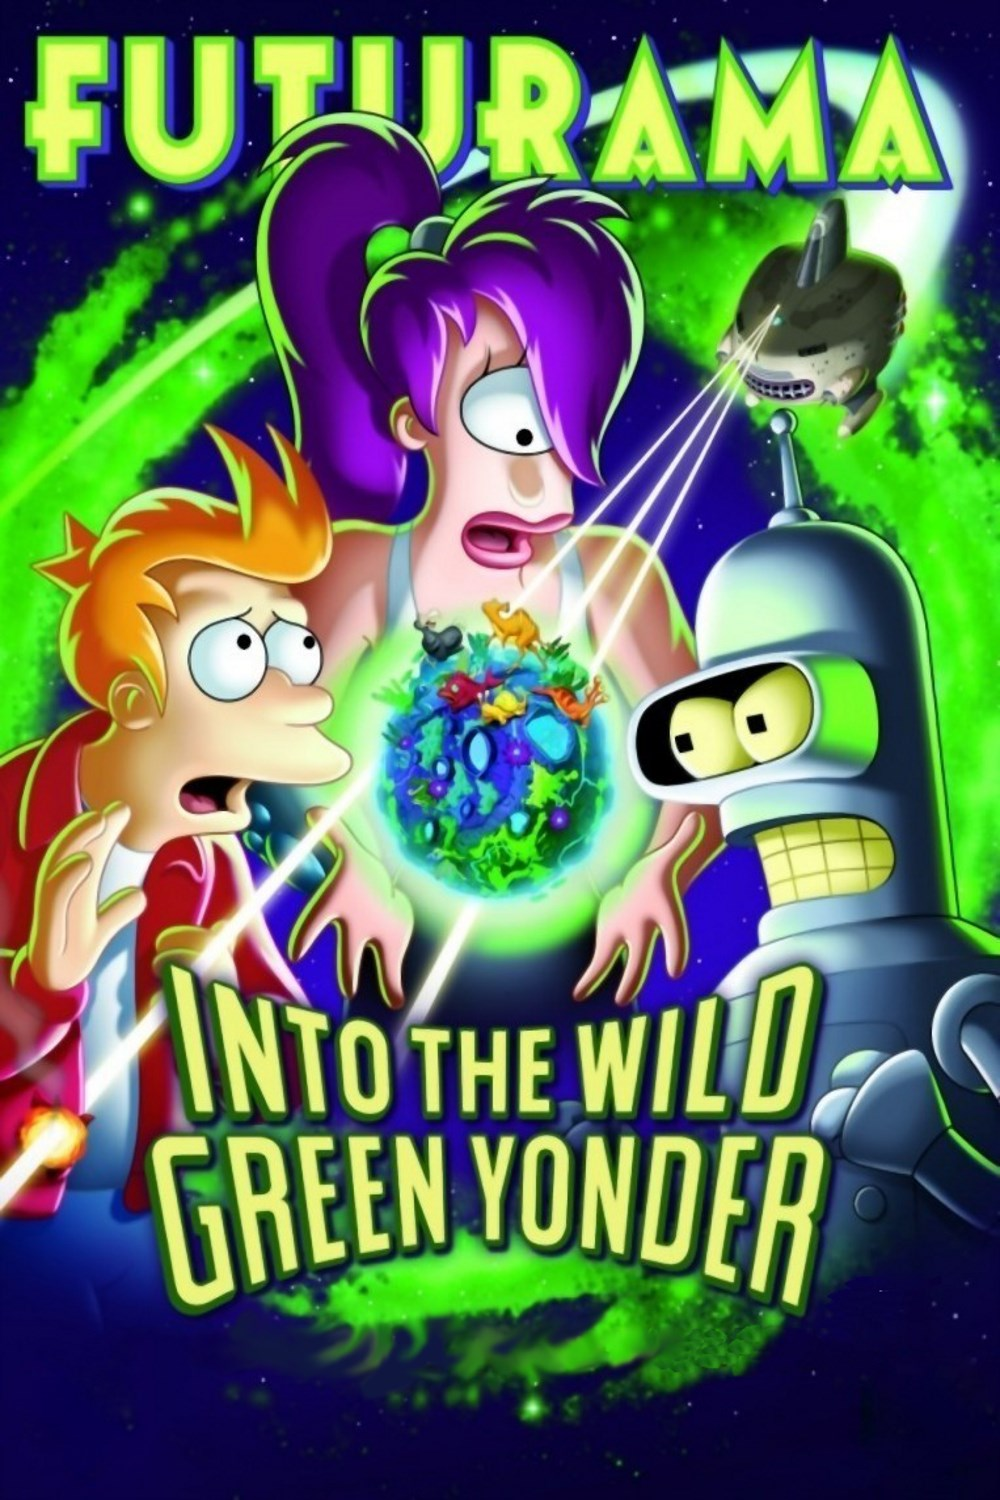 Into The Wild Green Yonder